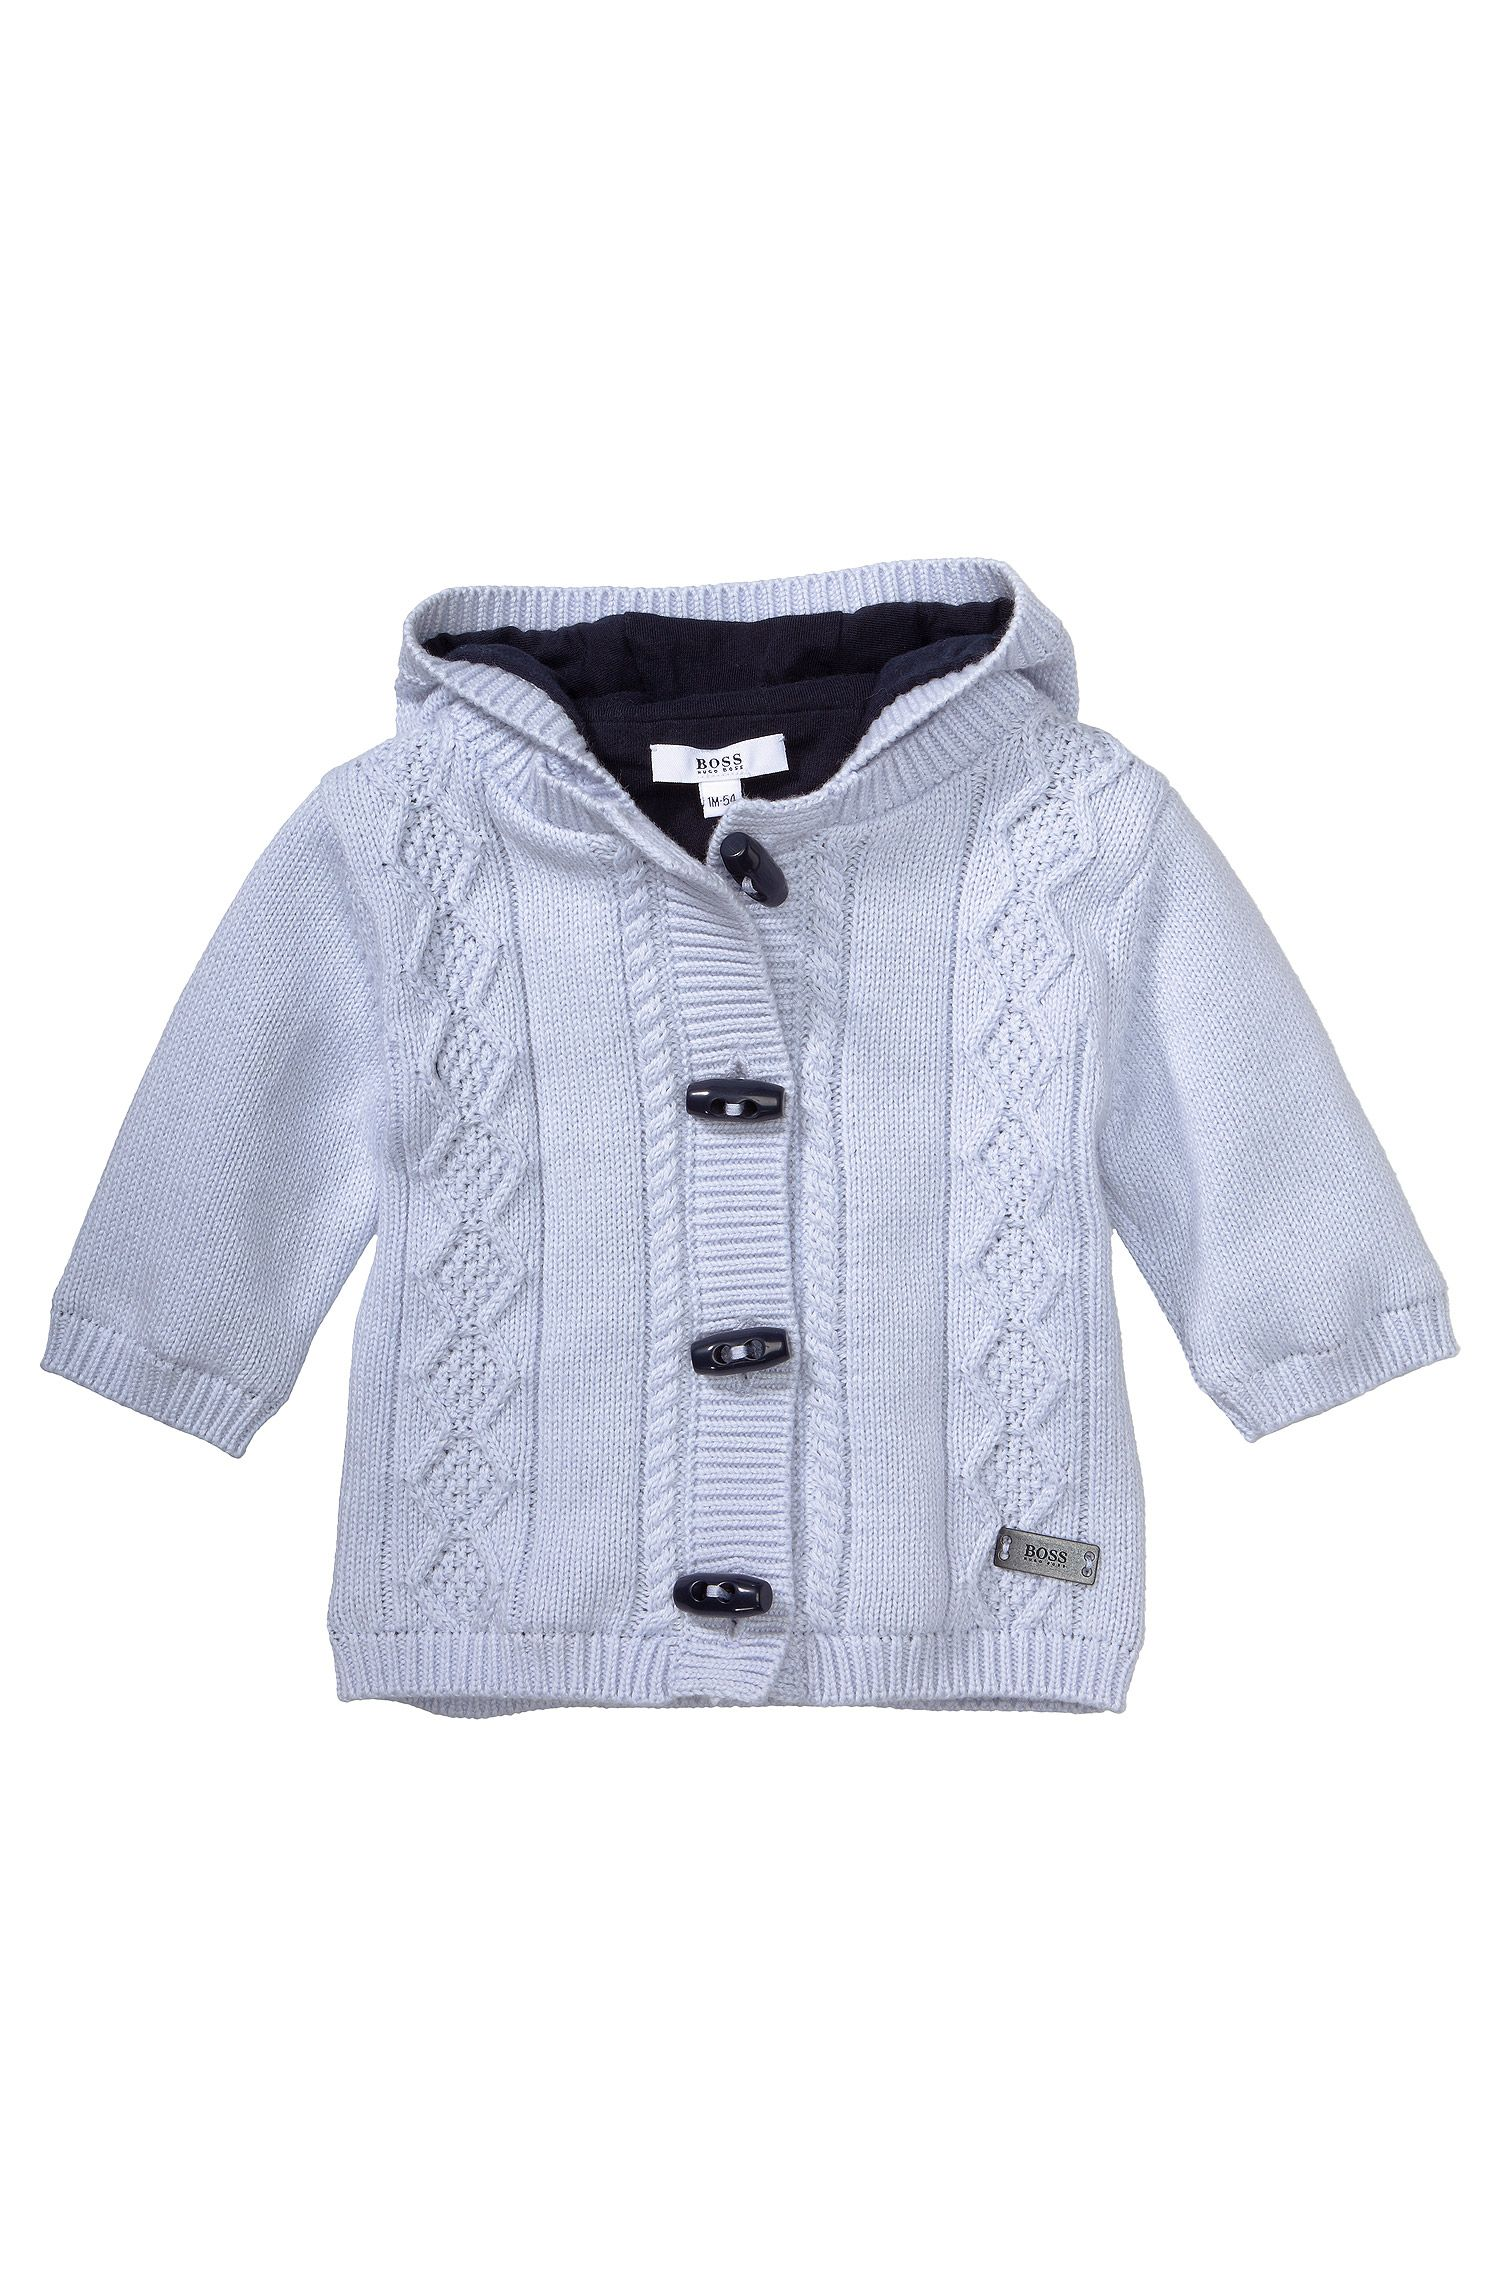 Kids-Strickjacke ´J95137` aus Baumwoll-Mix